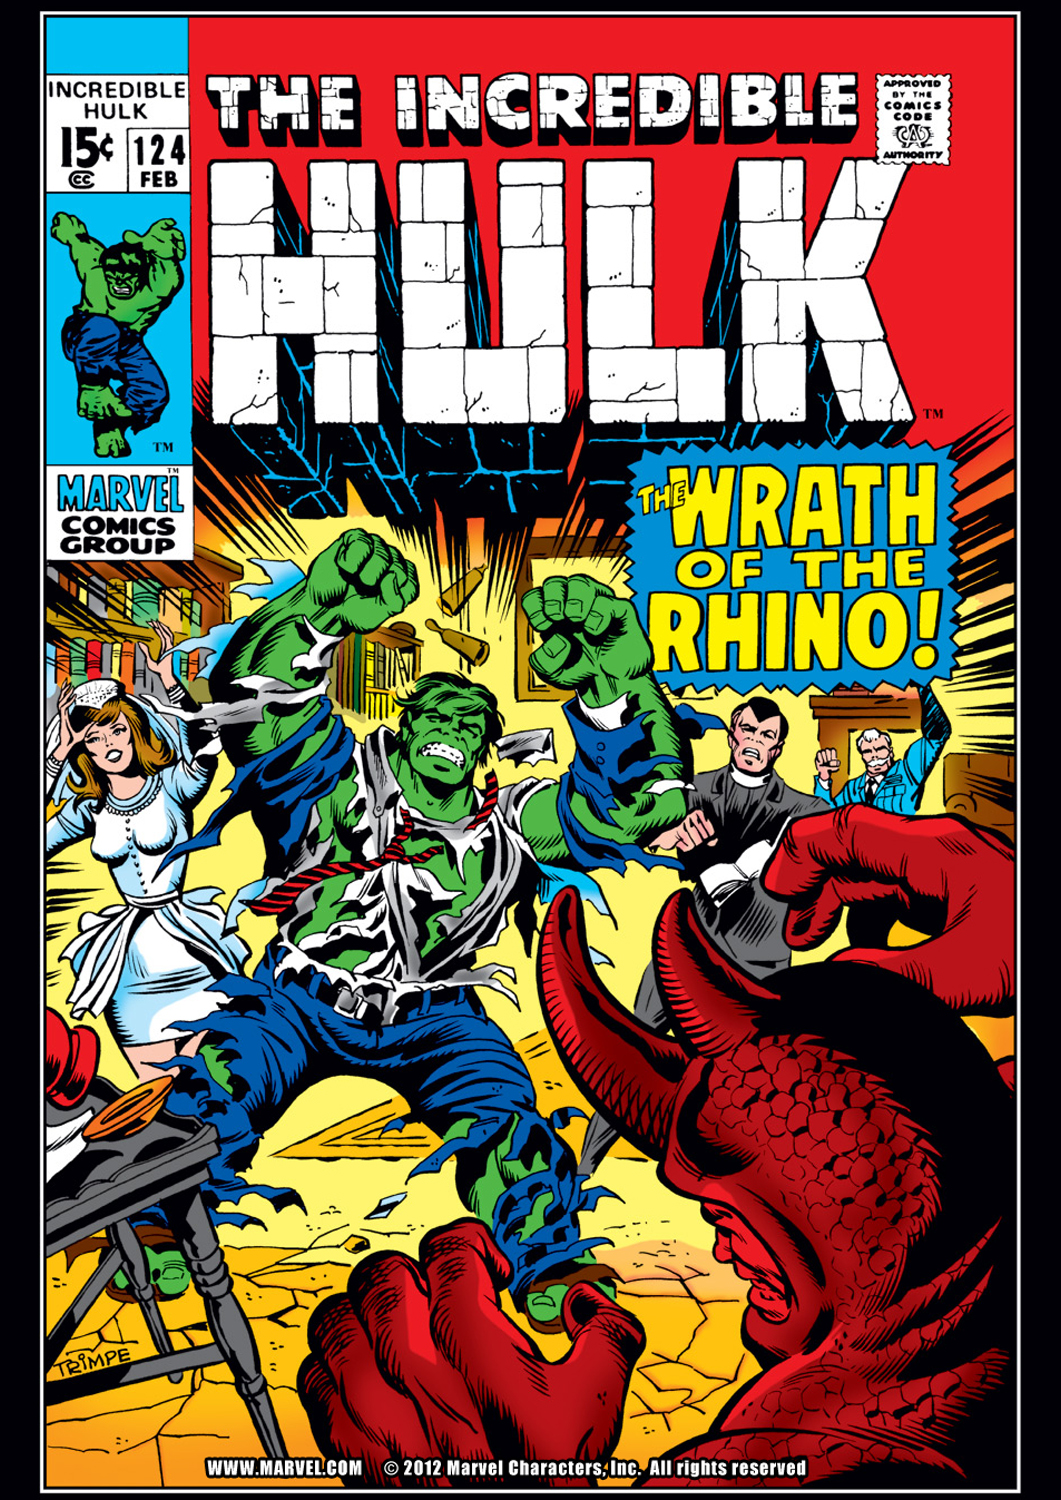 Incredible Hulk (1962) #124